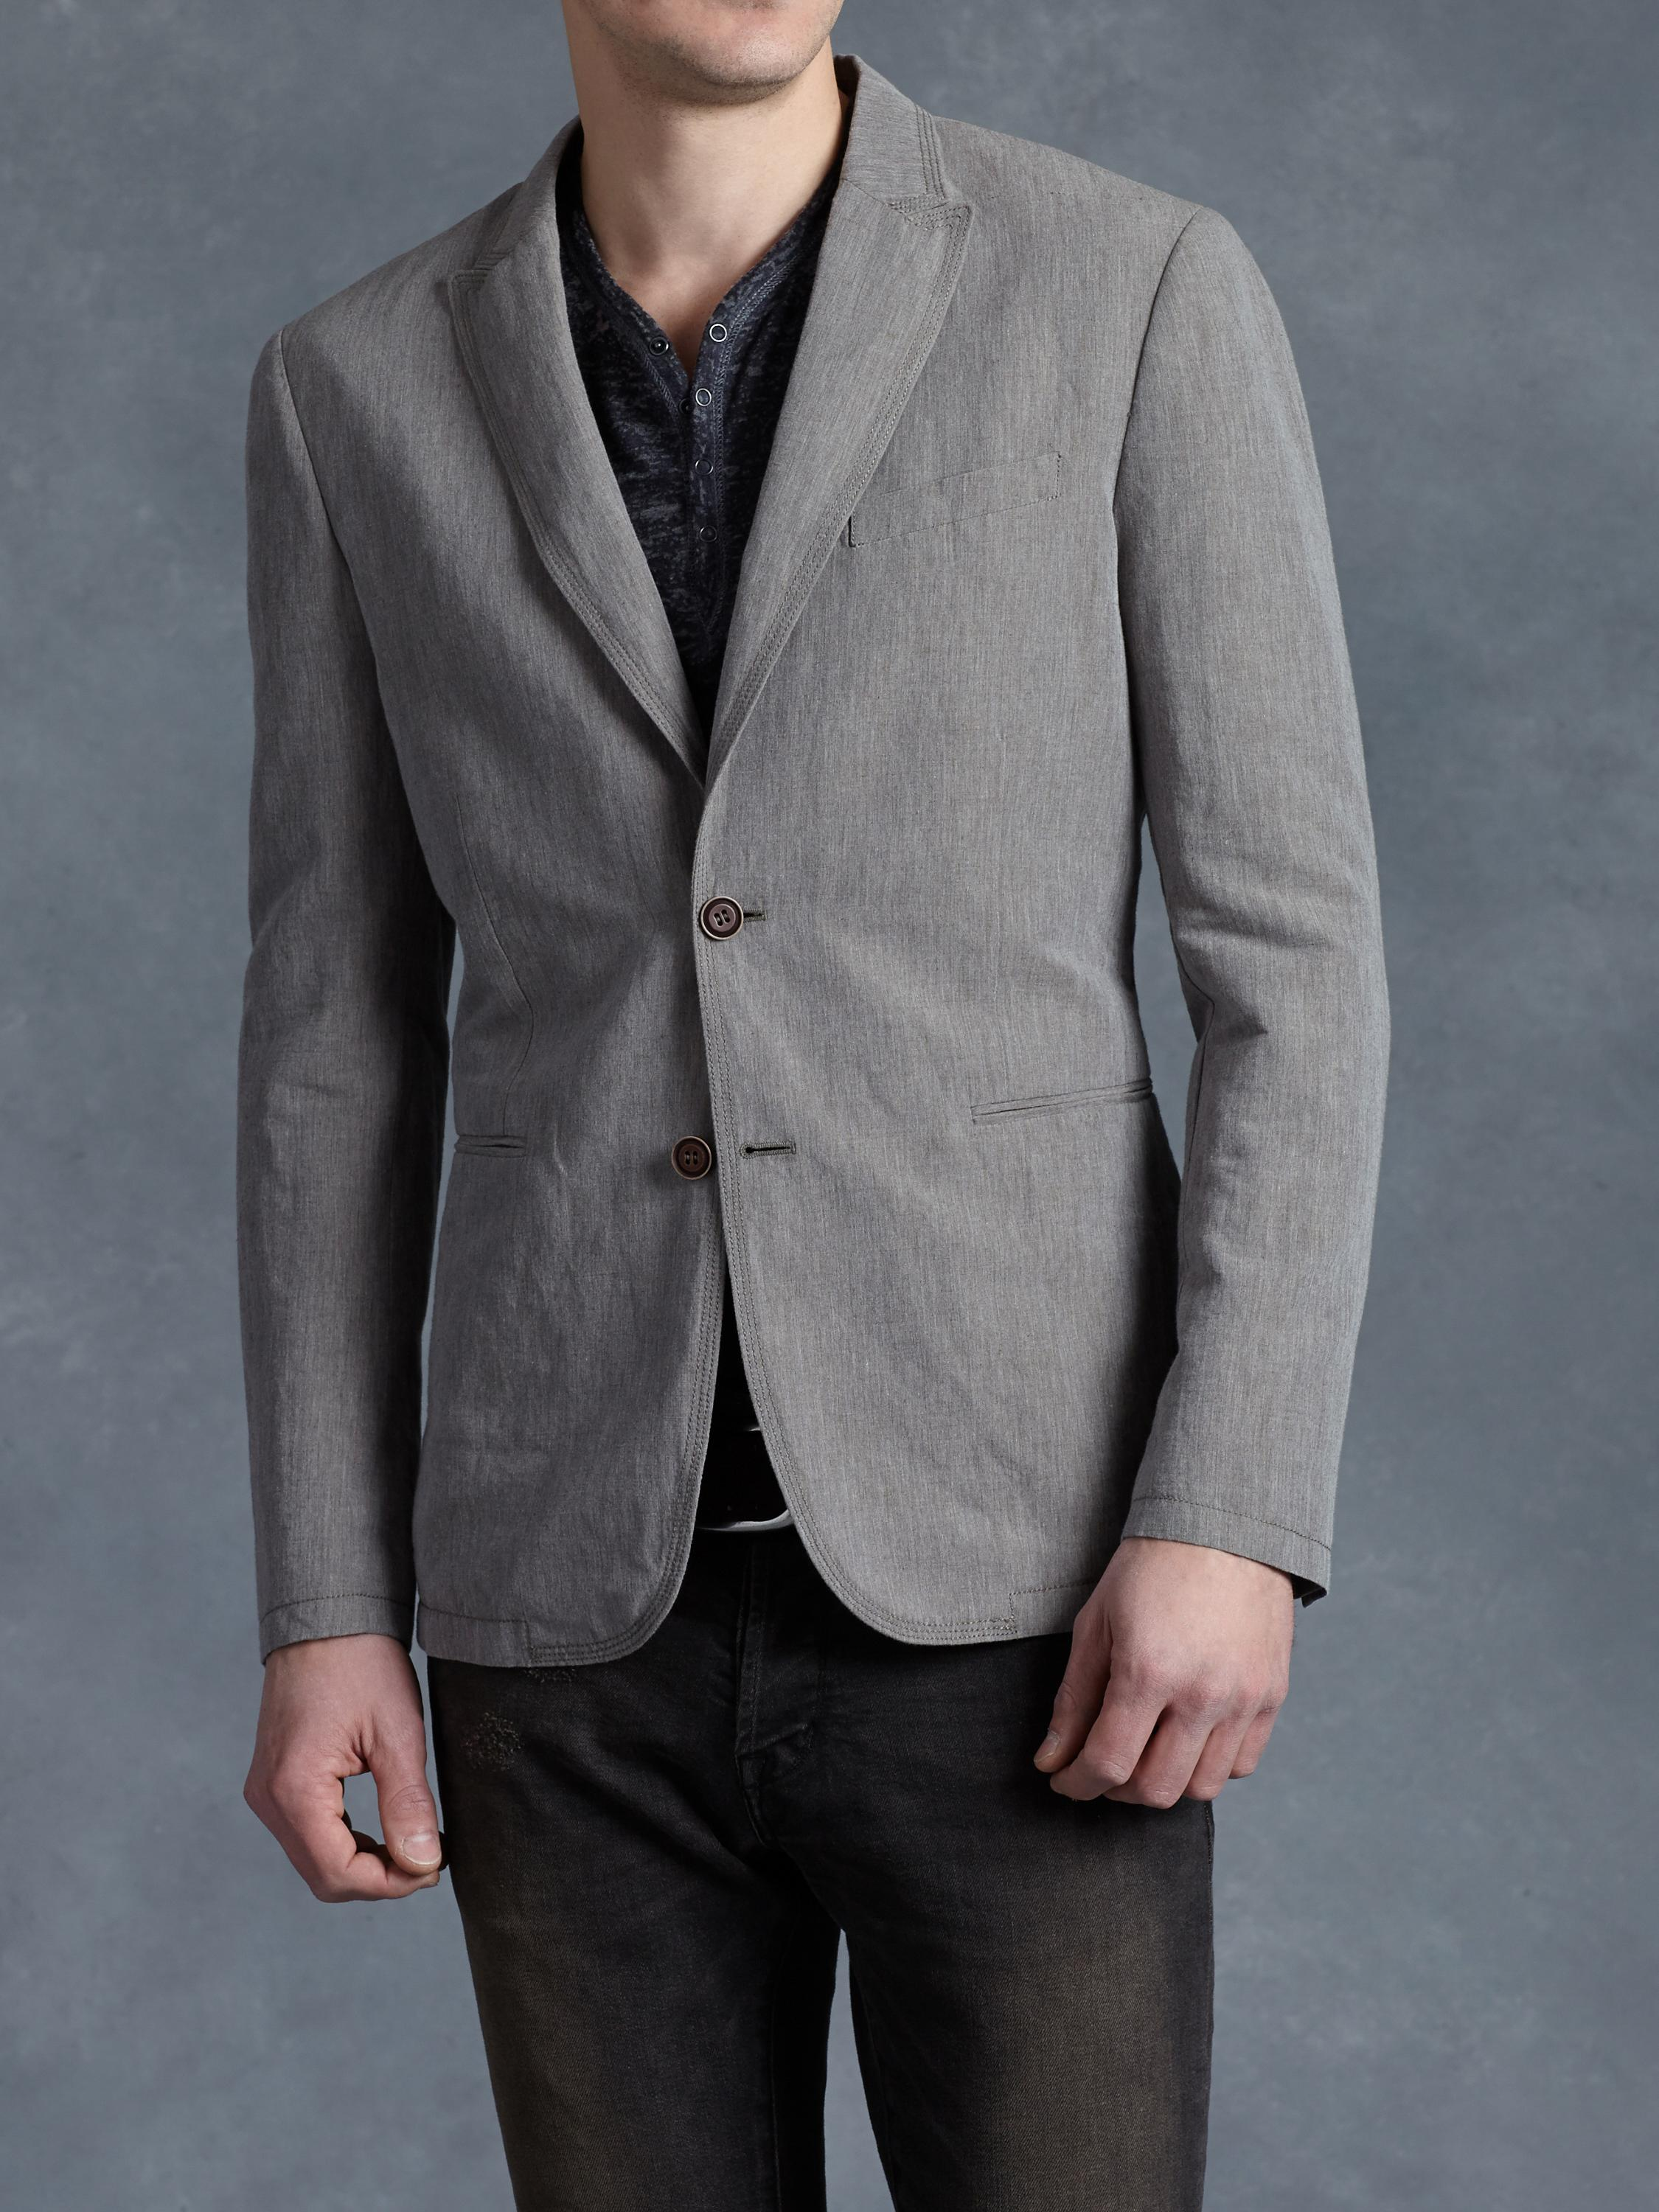 Topstitch Linen Jacket